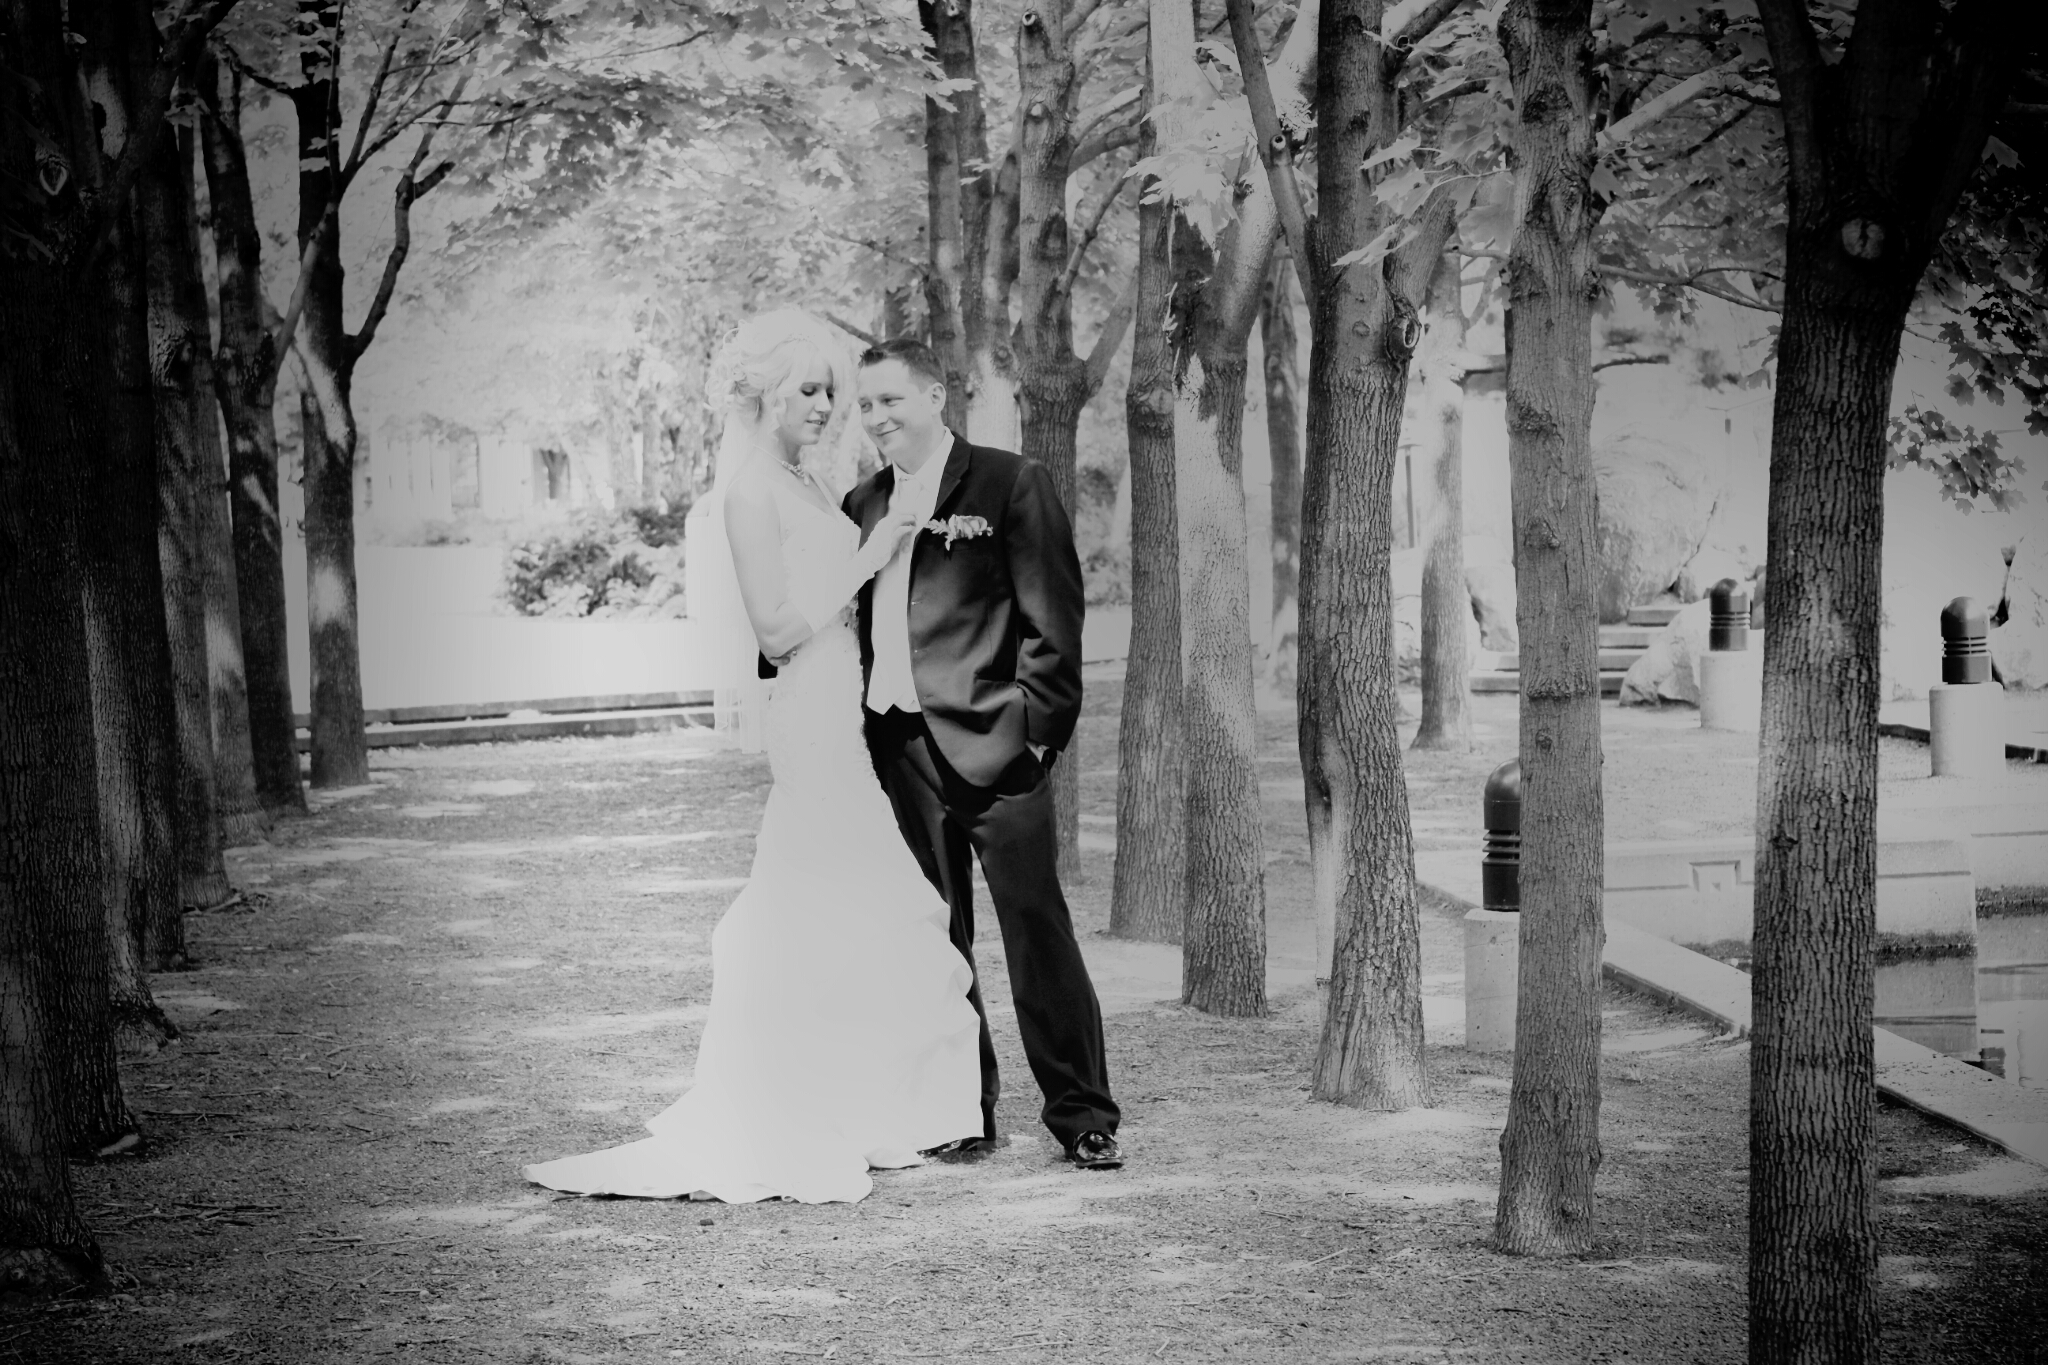 Black and white photo from memorable wedding